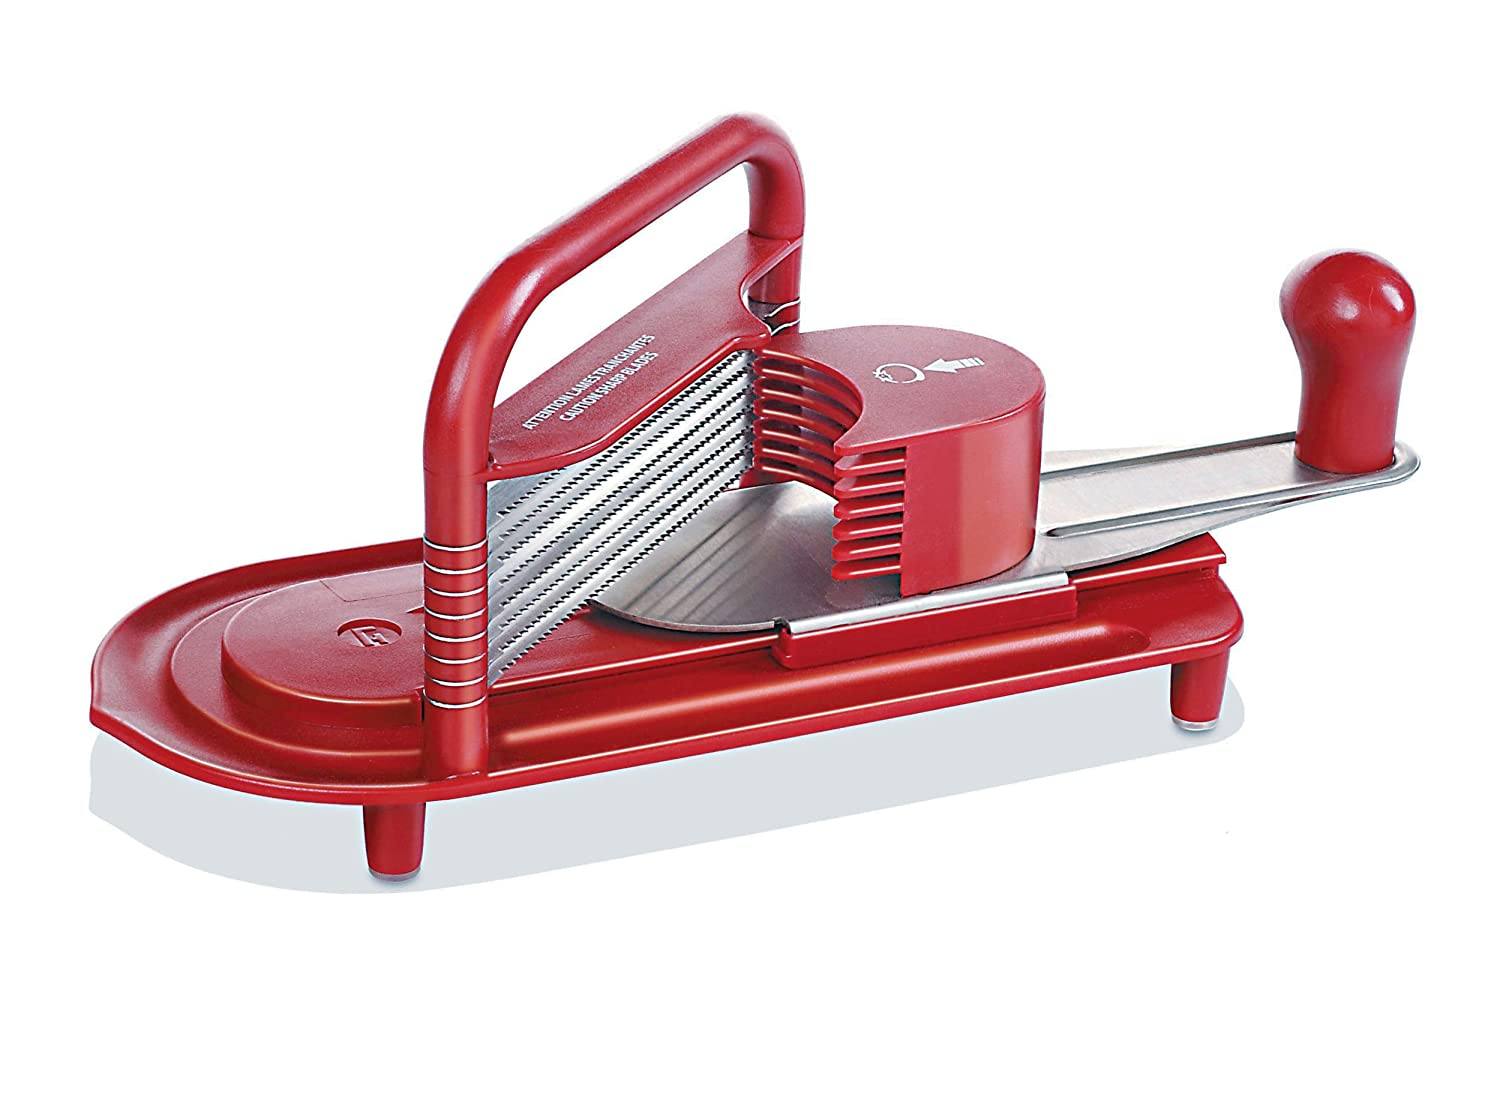 World Cuisine Tomato Cutter, Abs L 11 1/4 X W 5 X H 6 1/4 Paderno World Cuisine 49837-01